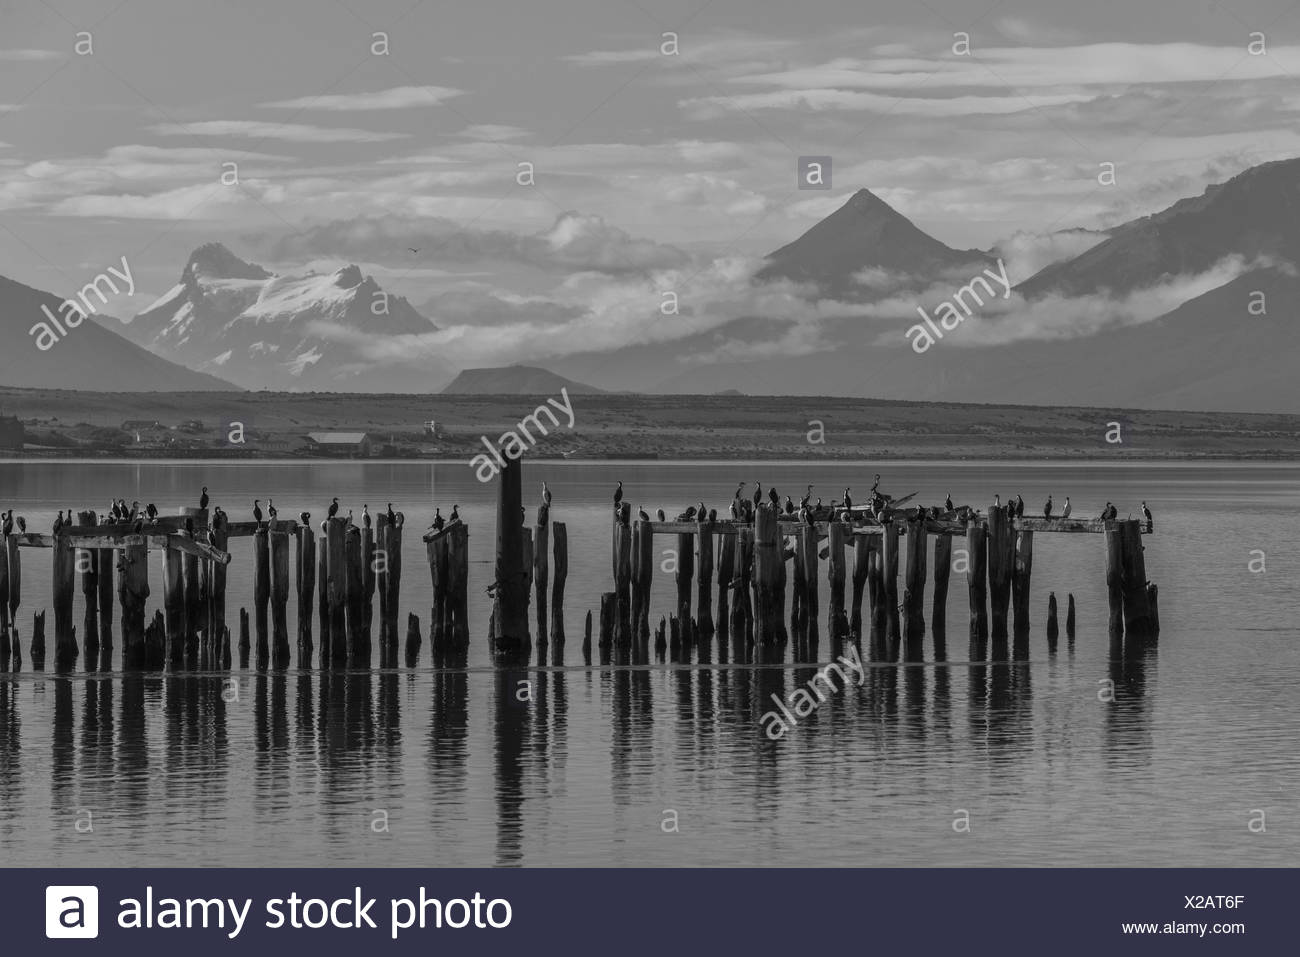 South America; Patagonia,Puerto Natales,Magallanes and Antartica Chilena Region - Stock Image